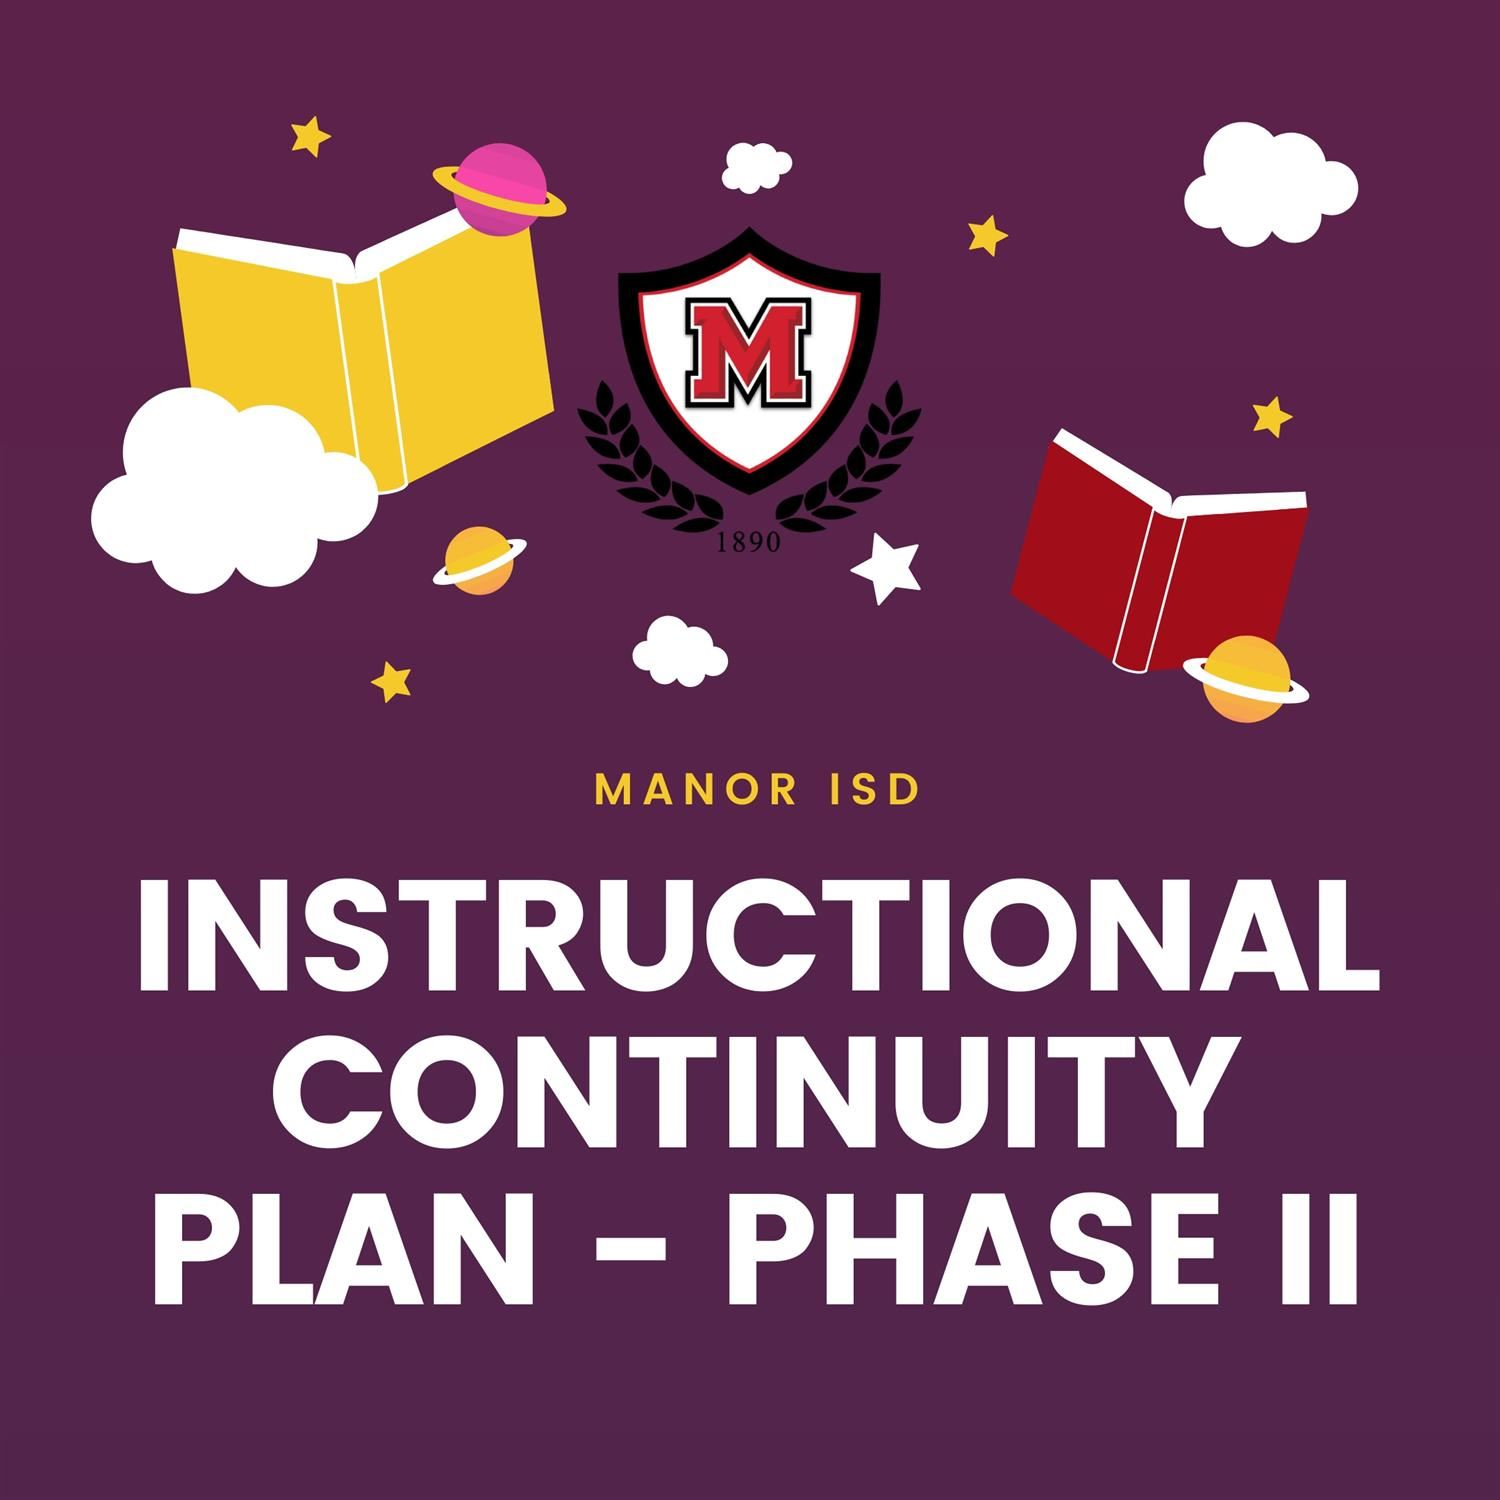 Instructional Continuity Plan - Phase II